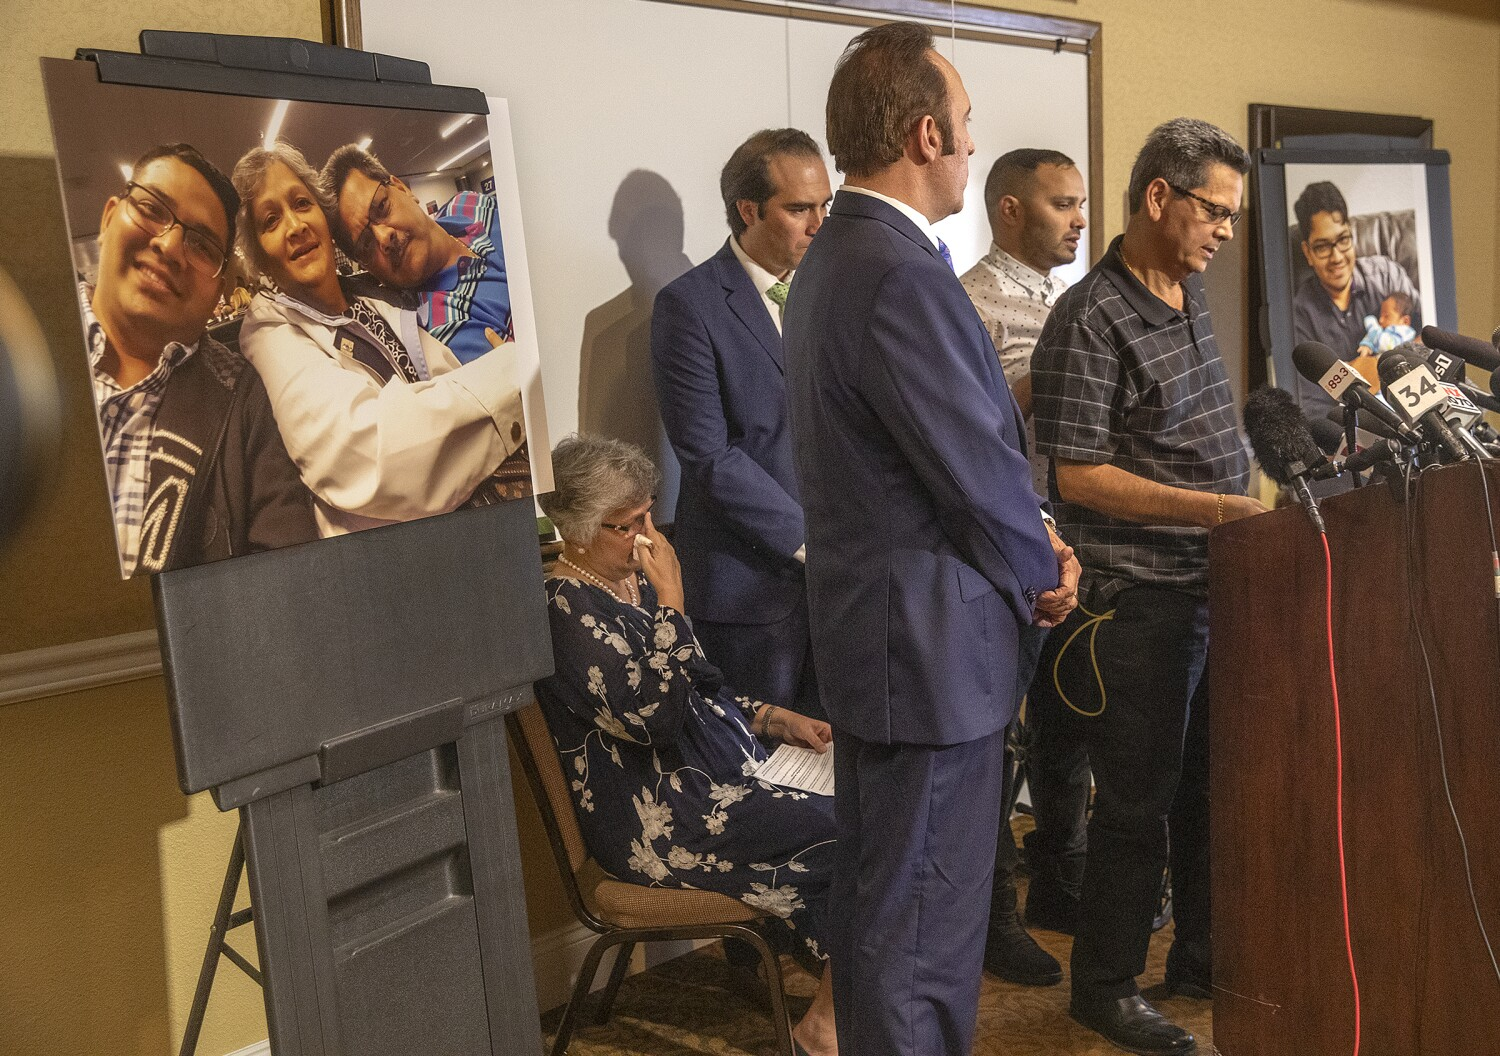 Family of man fatally shot by LAPD officer in Costco wins $17 million in damages